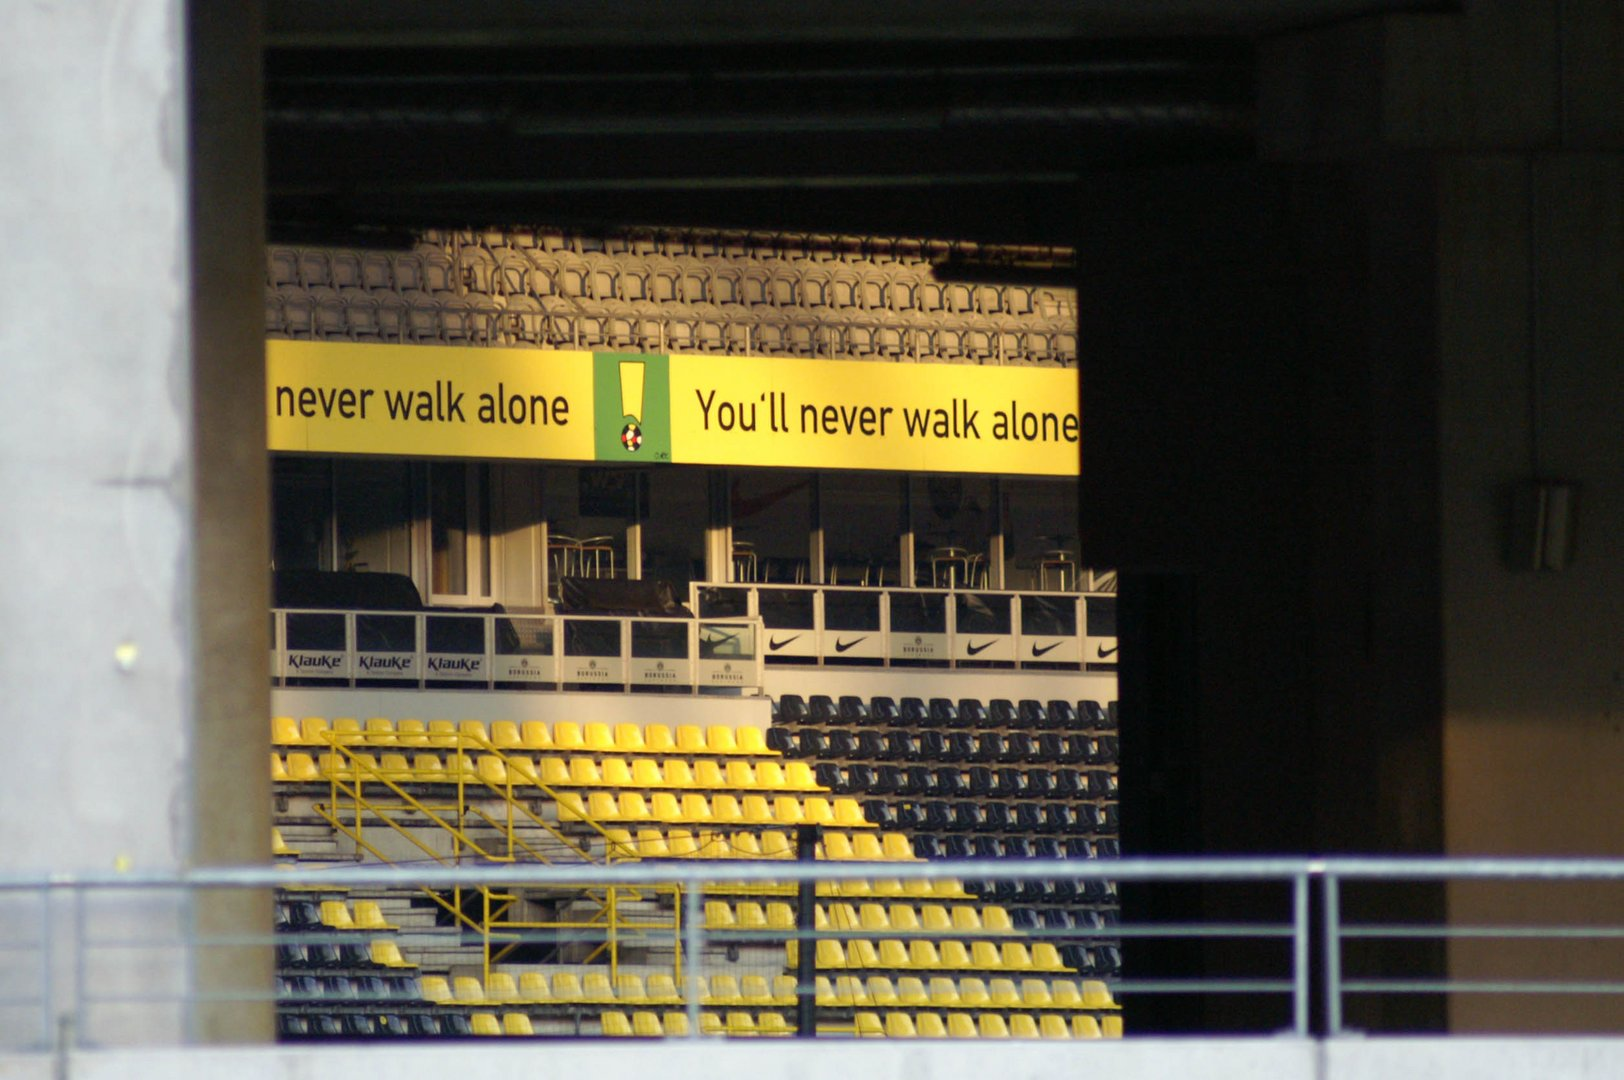 You'll never walk alone ;-)